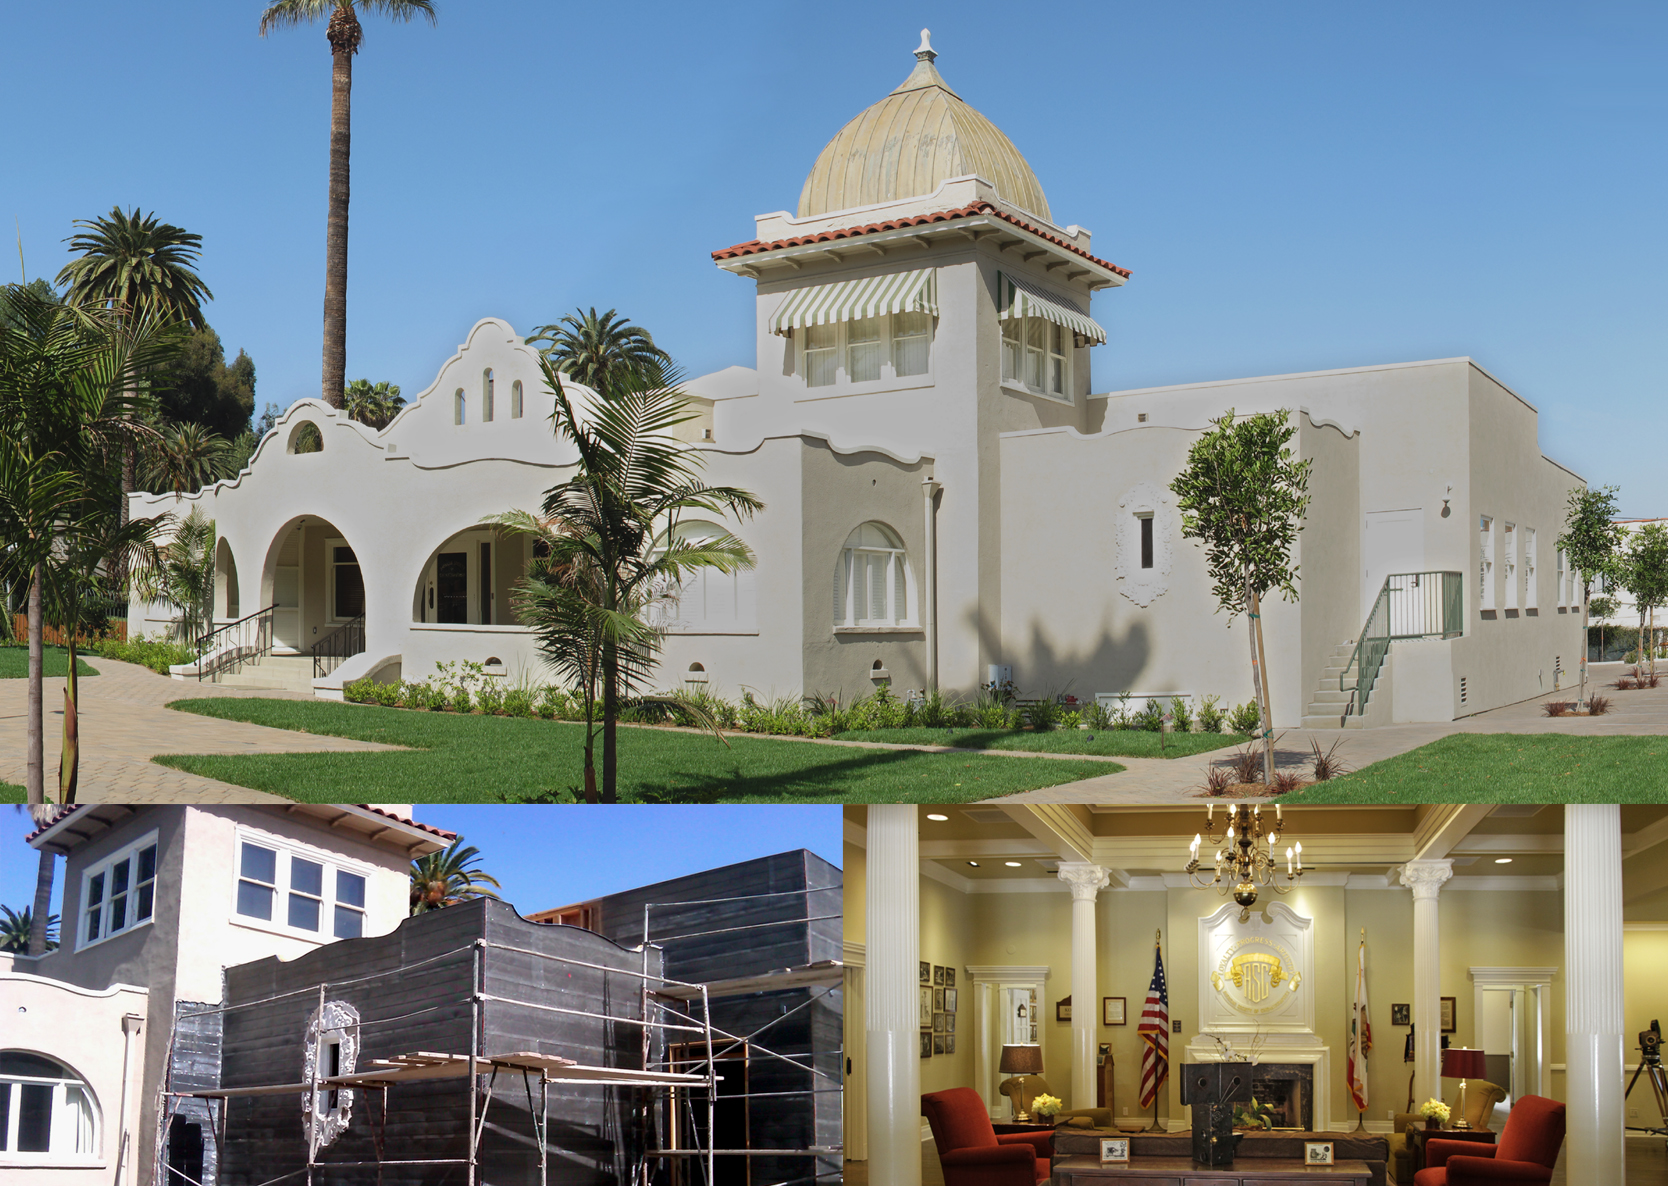 ASC Clubhouse -Expansion and Renovation of 1903 Historical Building for American Society of Cinematographers.